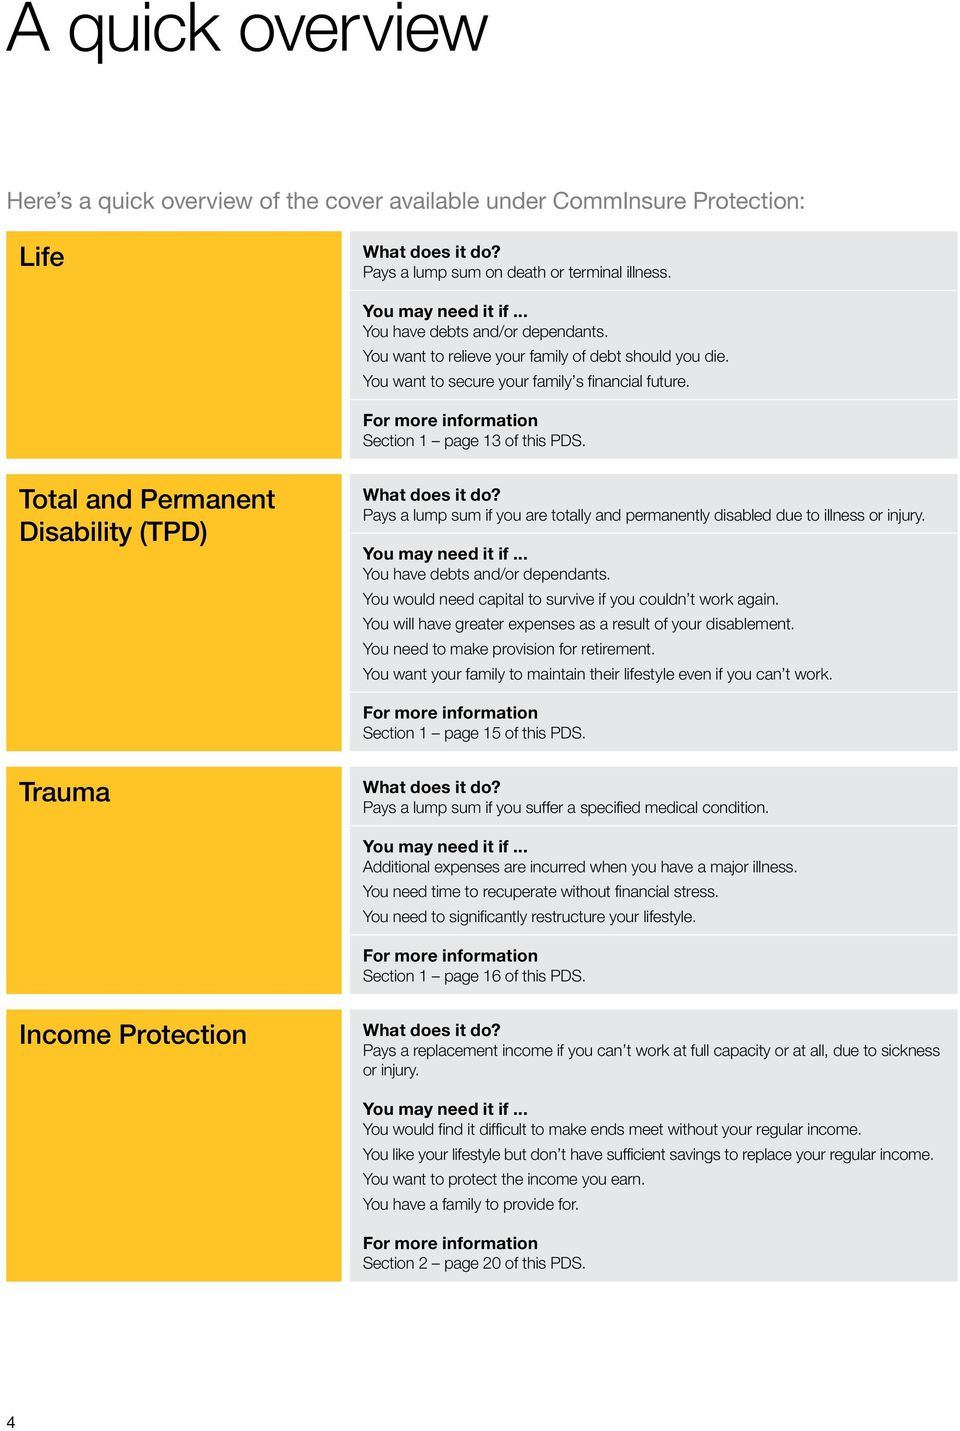 Total and Permanent Disability (TPD) What does it do? Pays a lump sum if you are totally and permanently disabled due to illness or injury. You may need it if... You have debts and/or dependants.